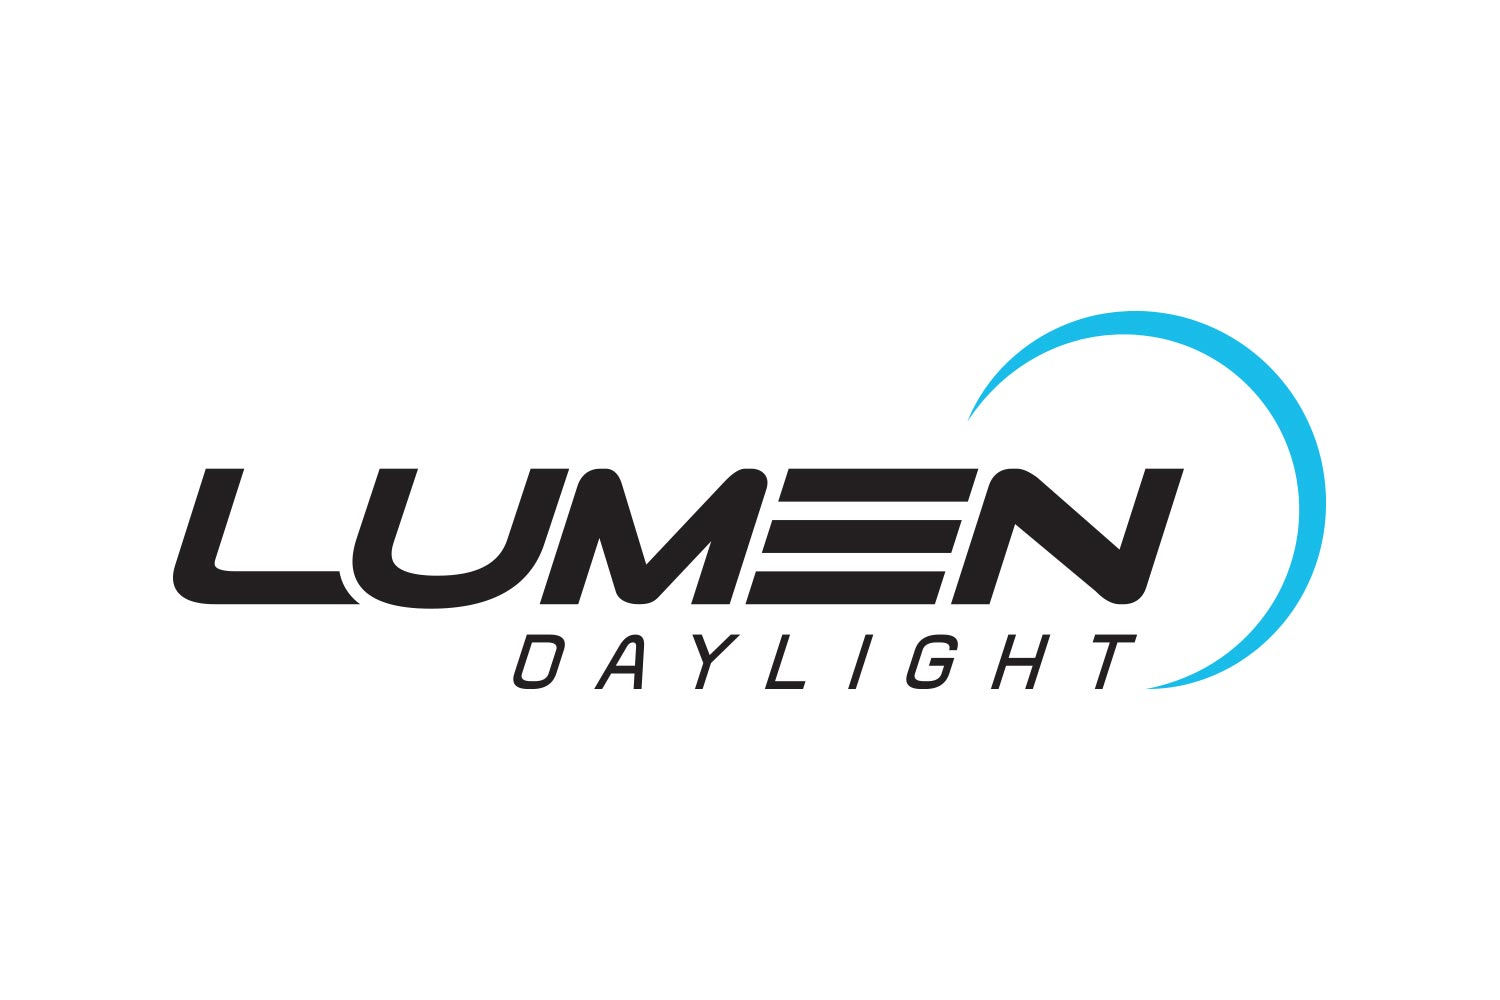 Lumen Cyclops7 LED Extraljus